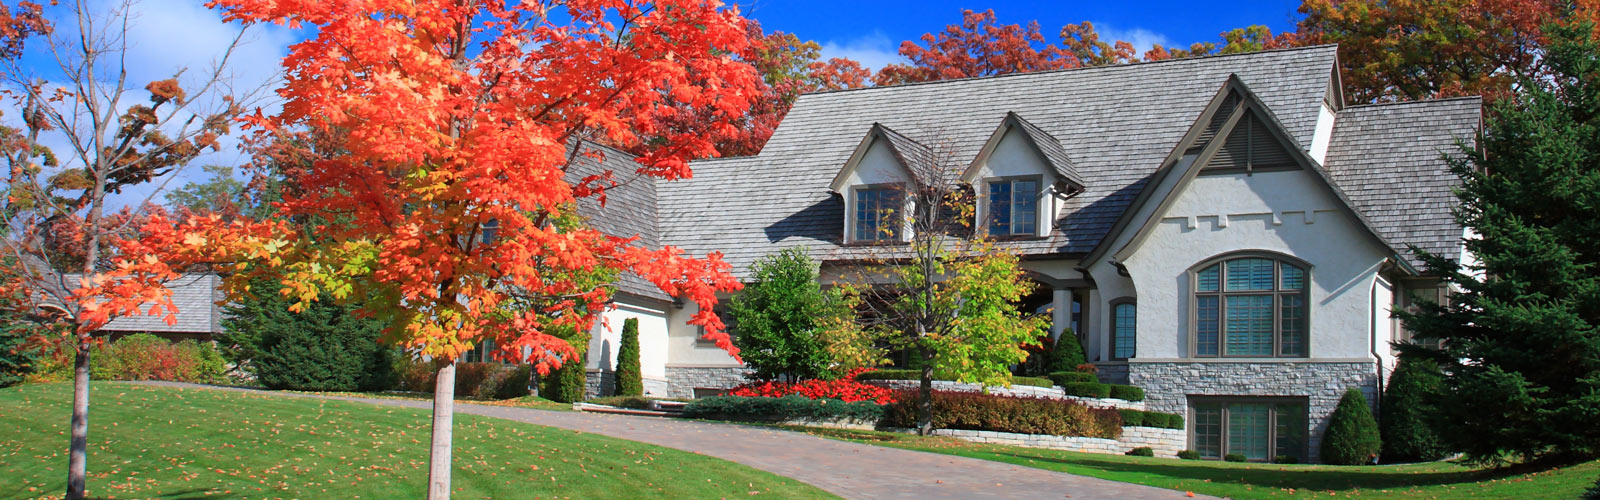 Central Indiana house in the fall